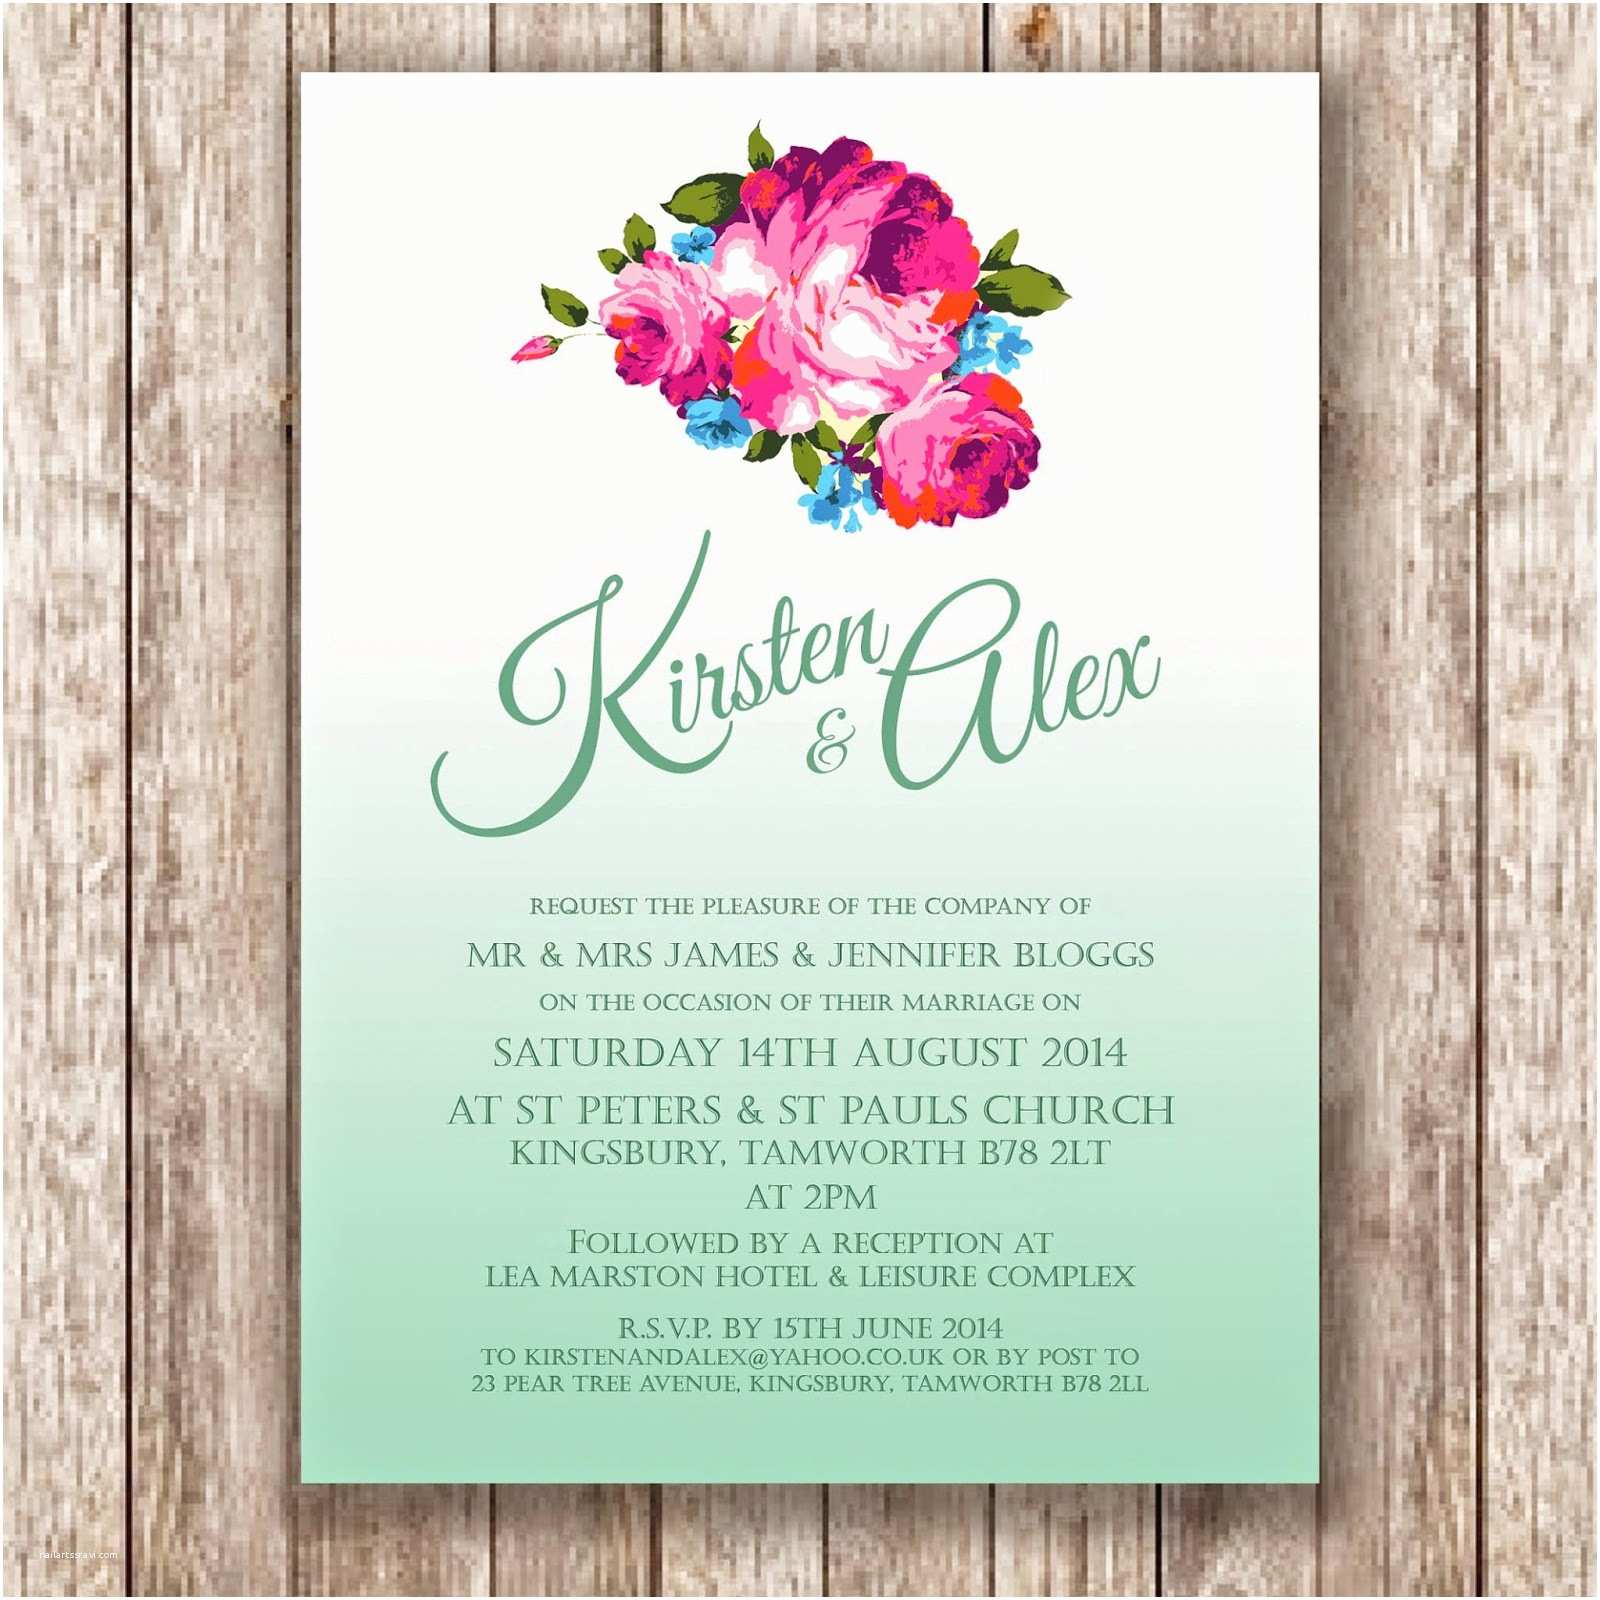 How to Print Out Wedding Invitations Create Own Digital Wedding Invitations Ideas